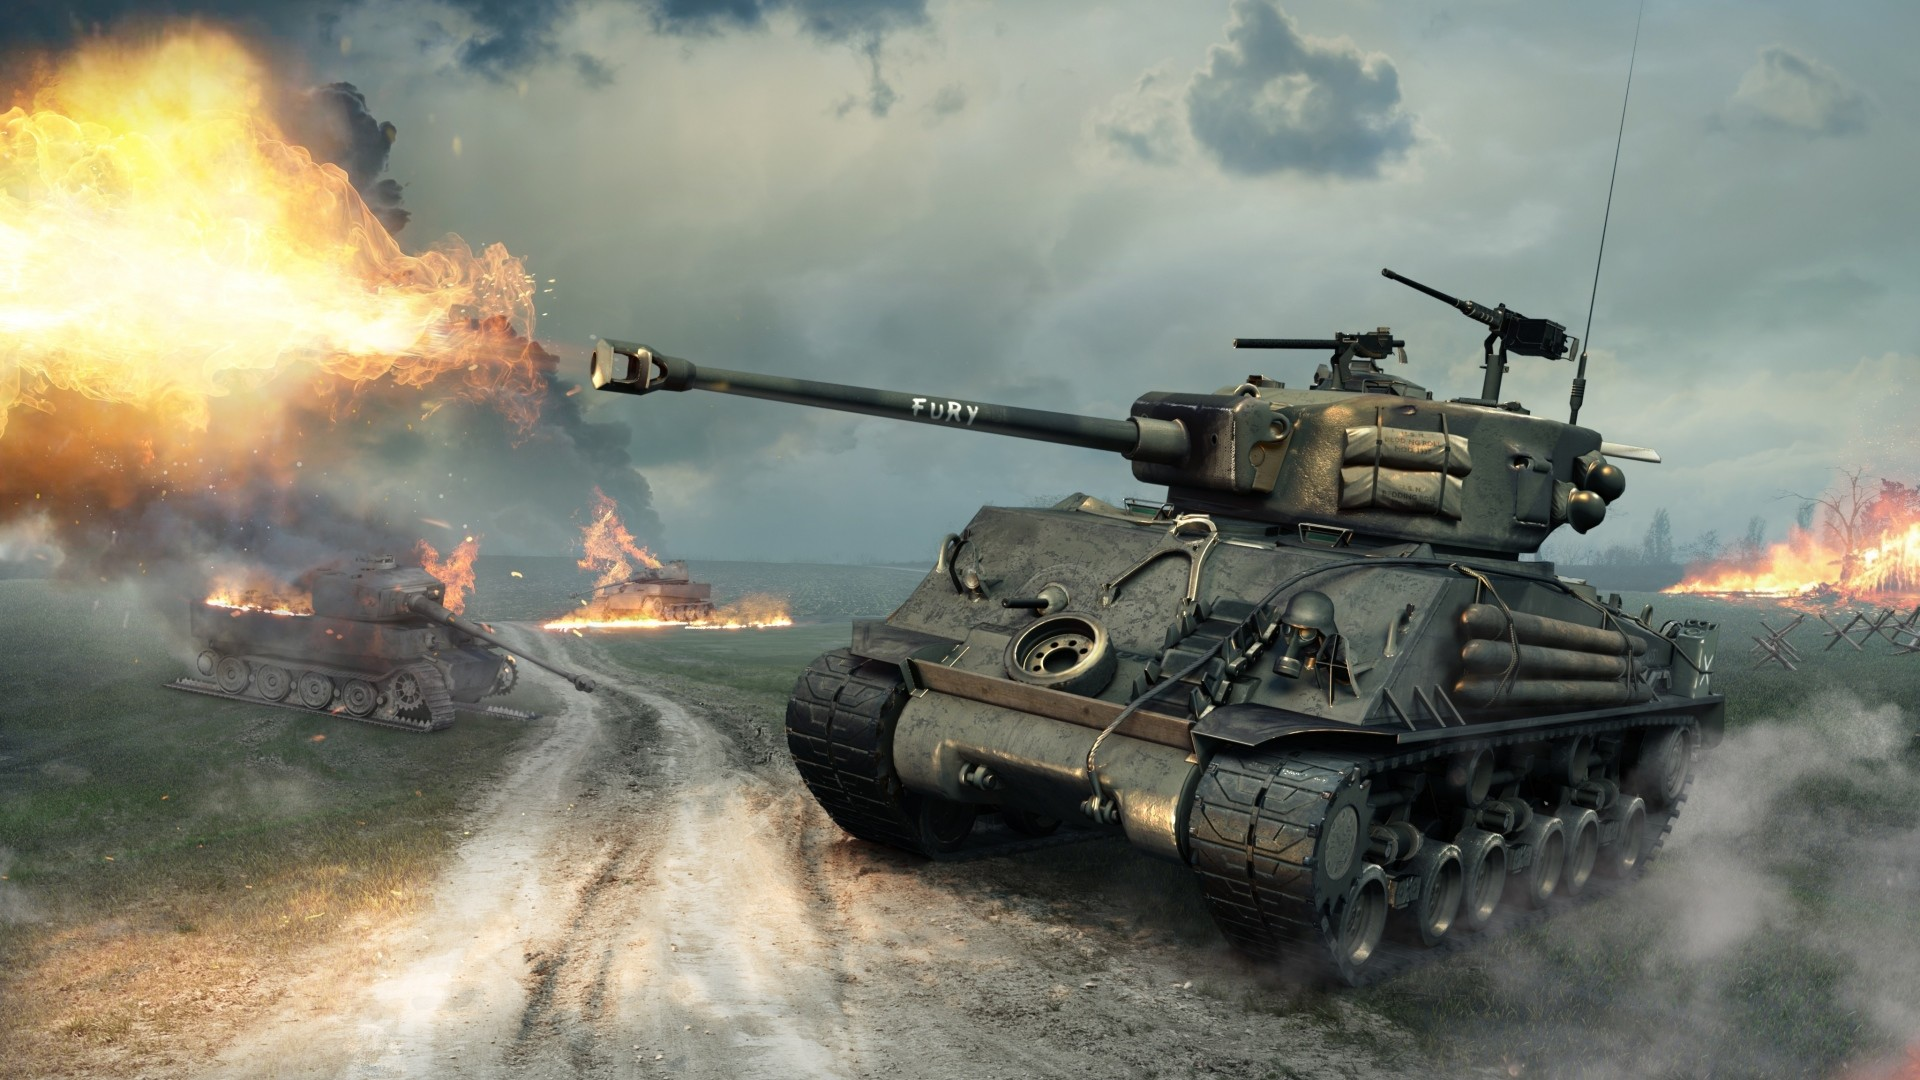 World Of Tanks Wallpaper 1920x1080 85 Images